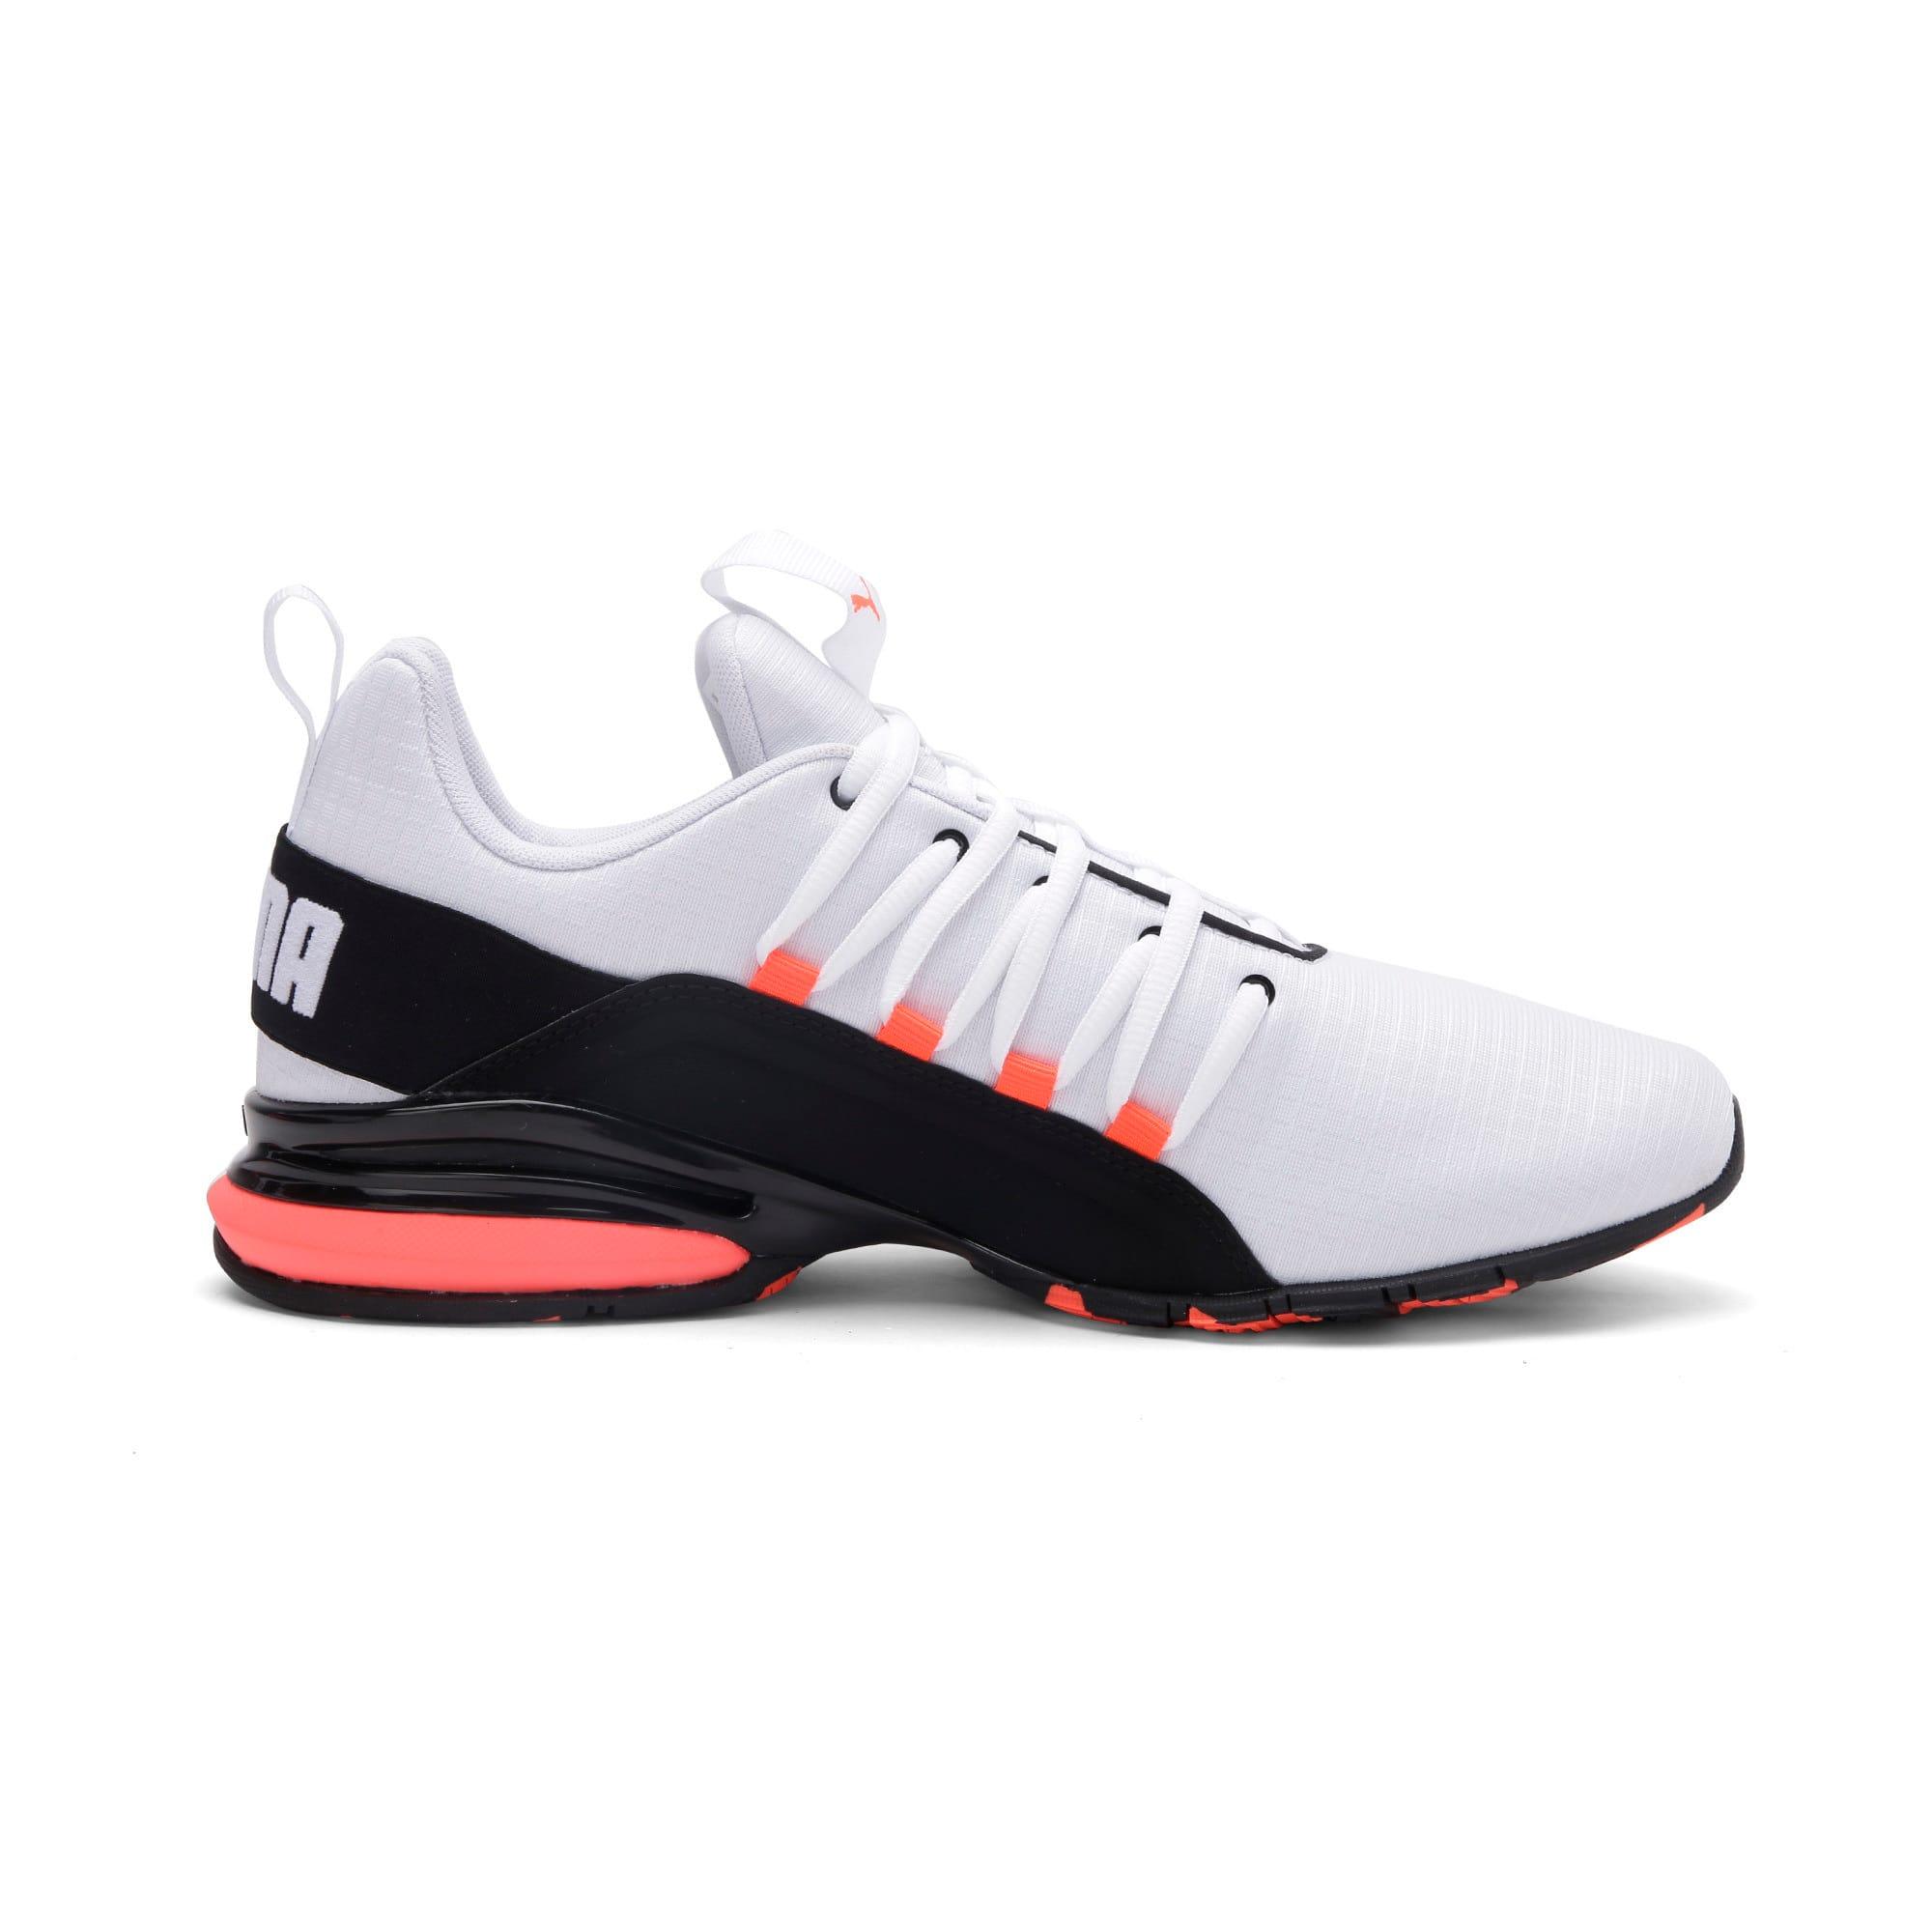 Thumbnail 7 of Axelion Rip Men's Running Shoes, White-Black-Nrgy Red, medium-IND